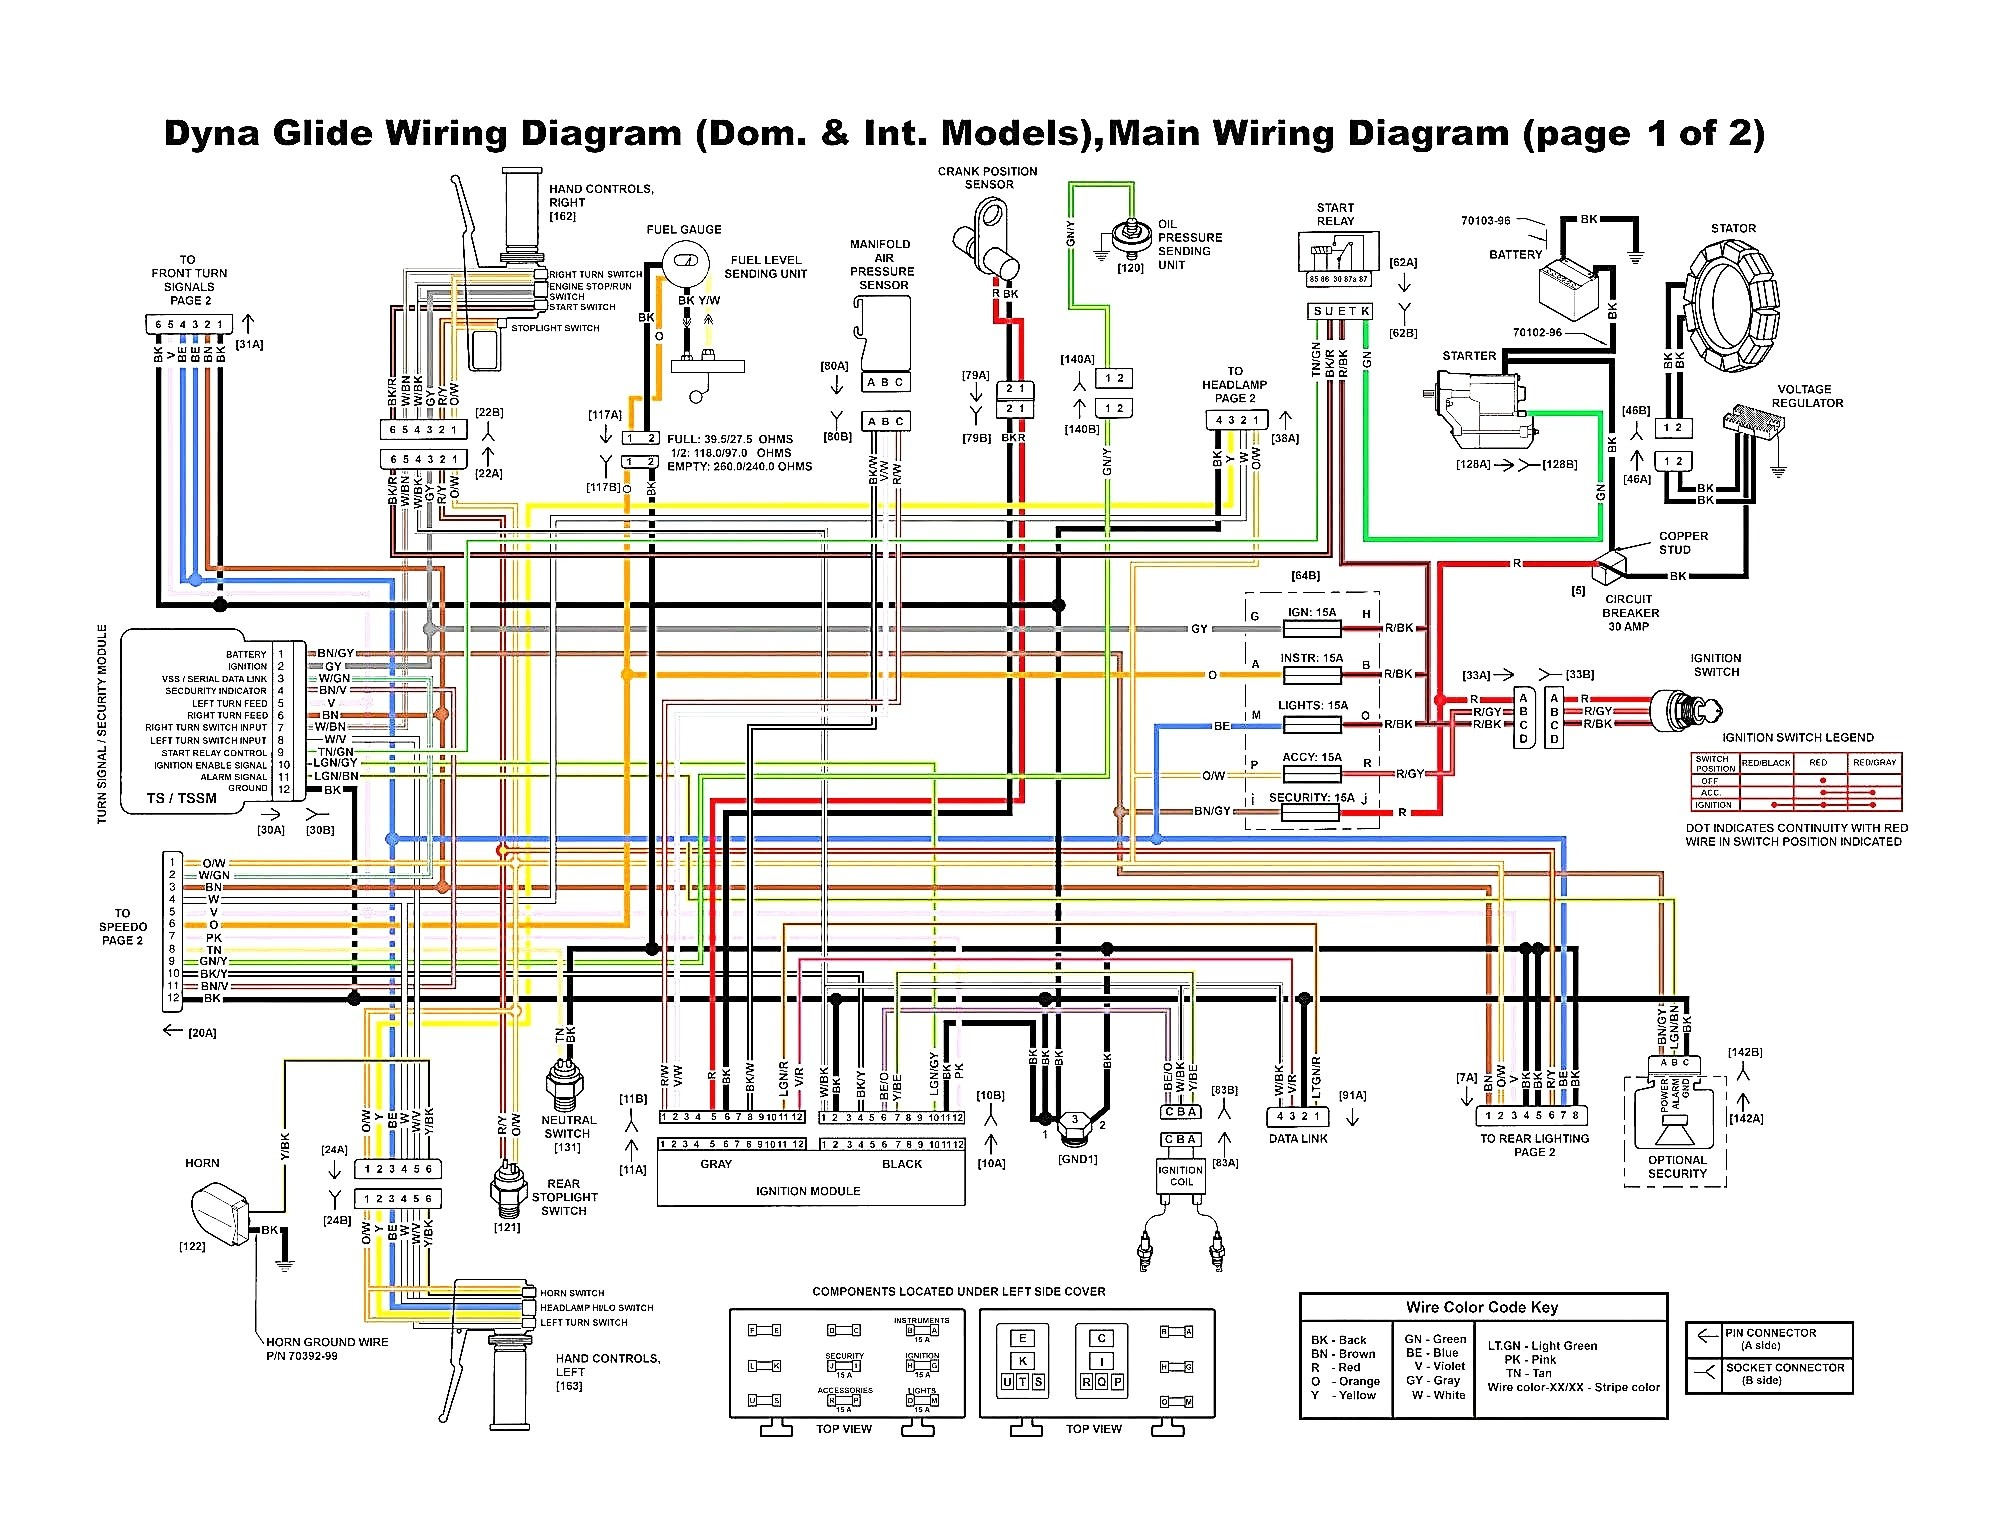 Simple Shovelhead Wiring Diagram New Shovelhead Fxe Wiring Diagram Basic Wiring Diagram E A Of Simple Shovelhead Wiring Diagram